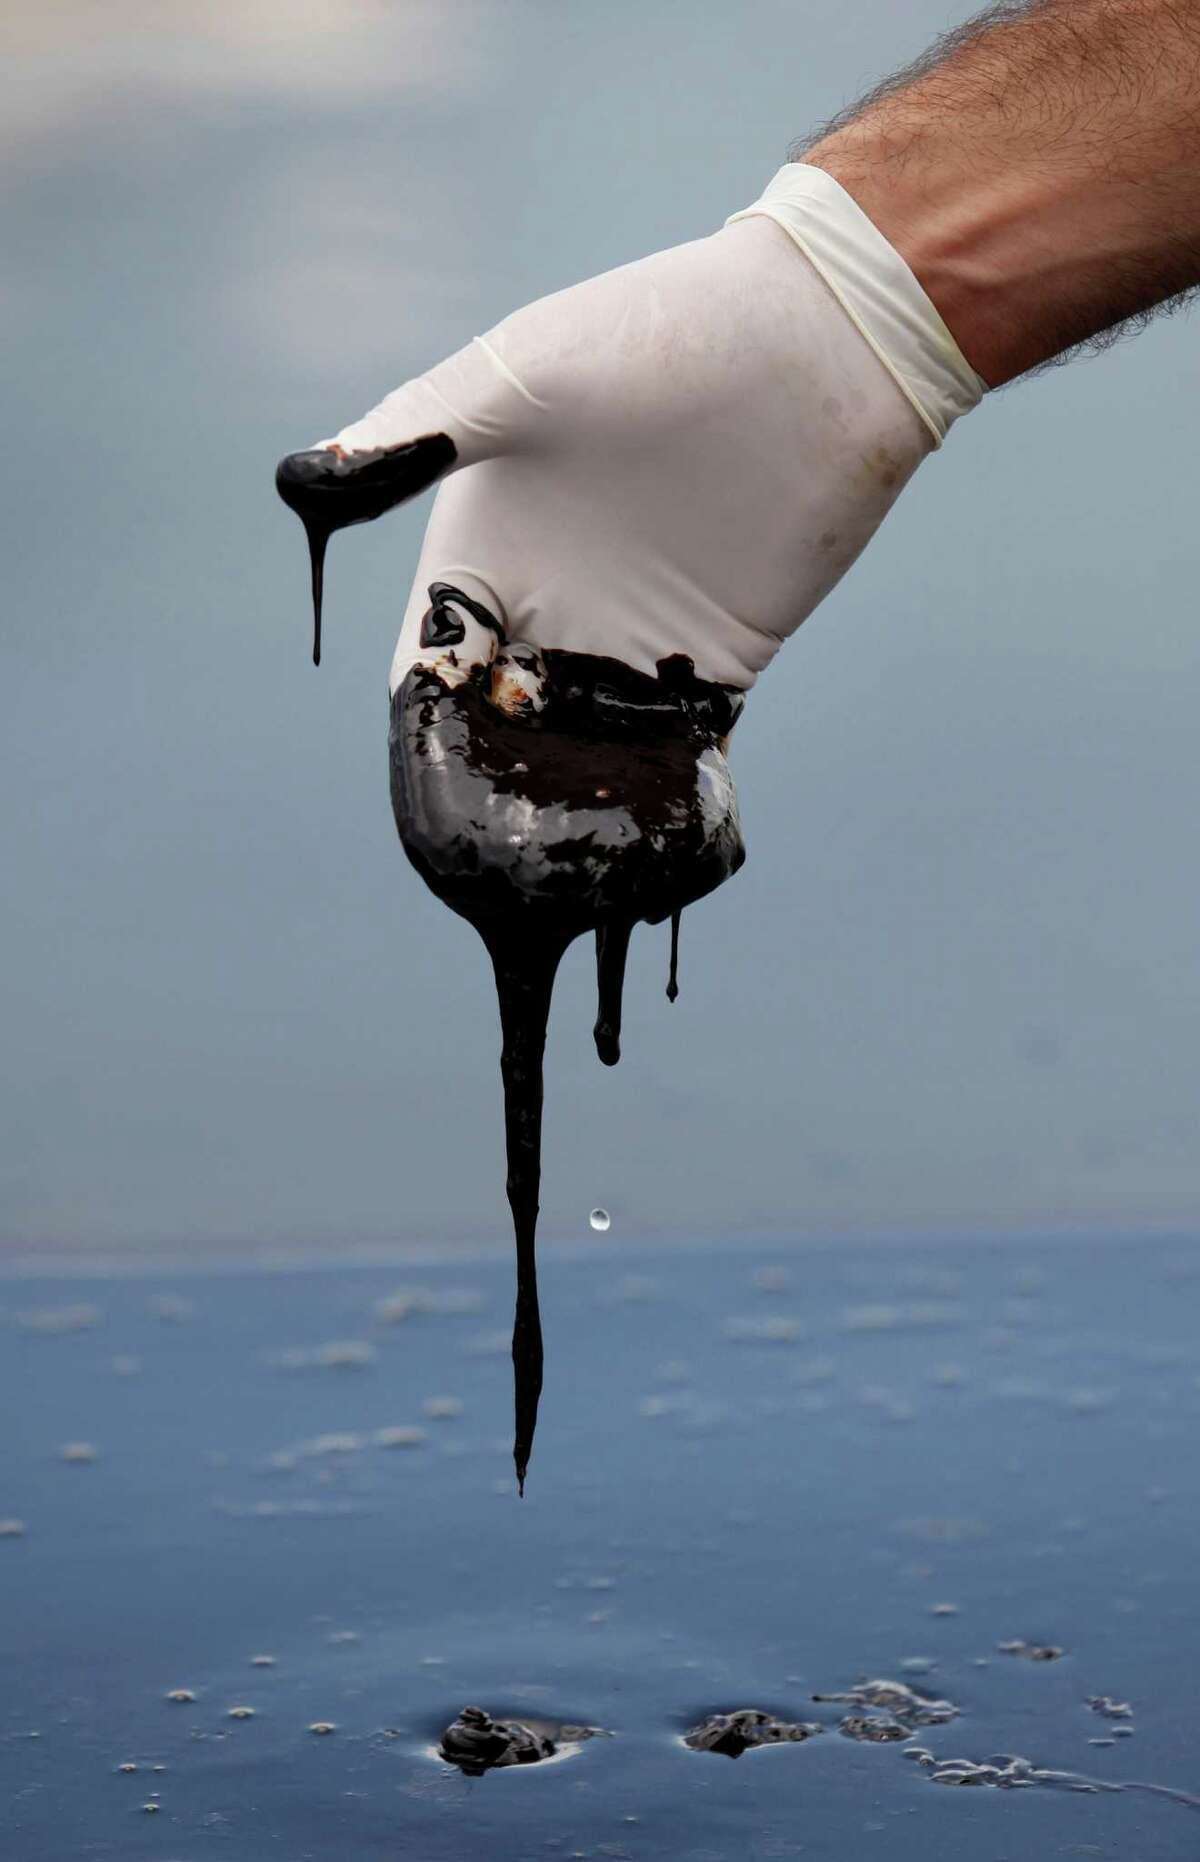 FILE - In this June 15, 2010 file photo, a member of Louisiana Gov. Bobby Jindal's staff wearing a glove reaches into thick oil on the surface of the northern regions of Barataria Bay in Plaquemines Parish, La. An April 20, 2010 explosion at the BP Deepwater Horizon offshore platform killed 11 men, and the subsequent leak released an estimated 172 million gallons of petroleum into the Gulf of Mexico.